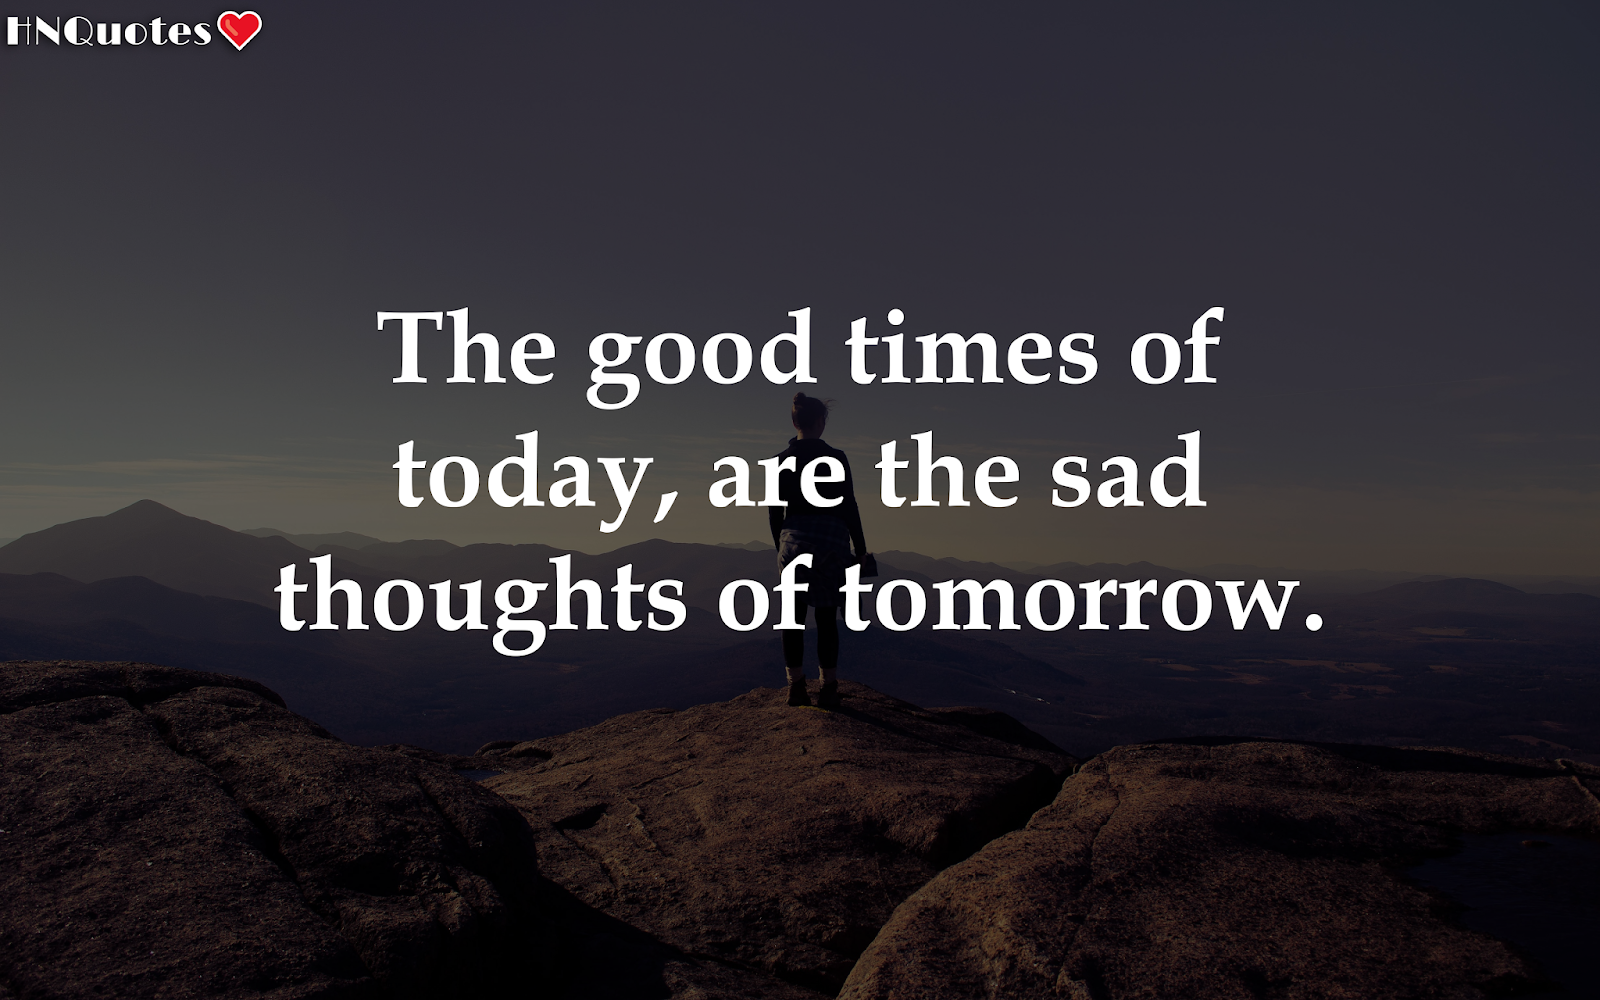 Sad Inspiring Quotes for Life | Motivational Quotes | HNQuotes